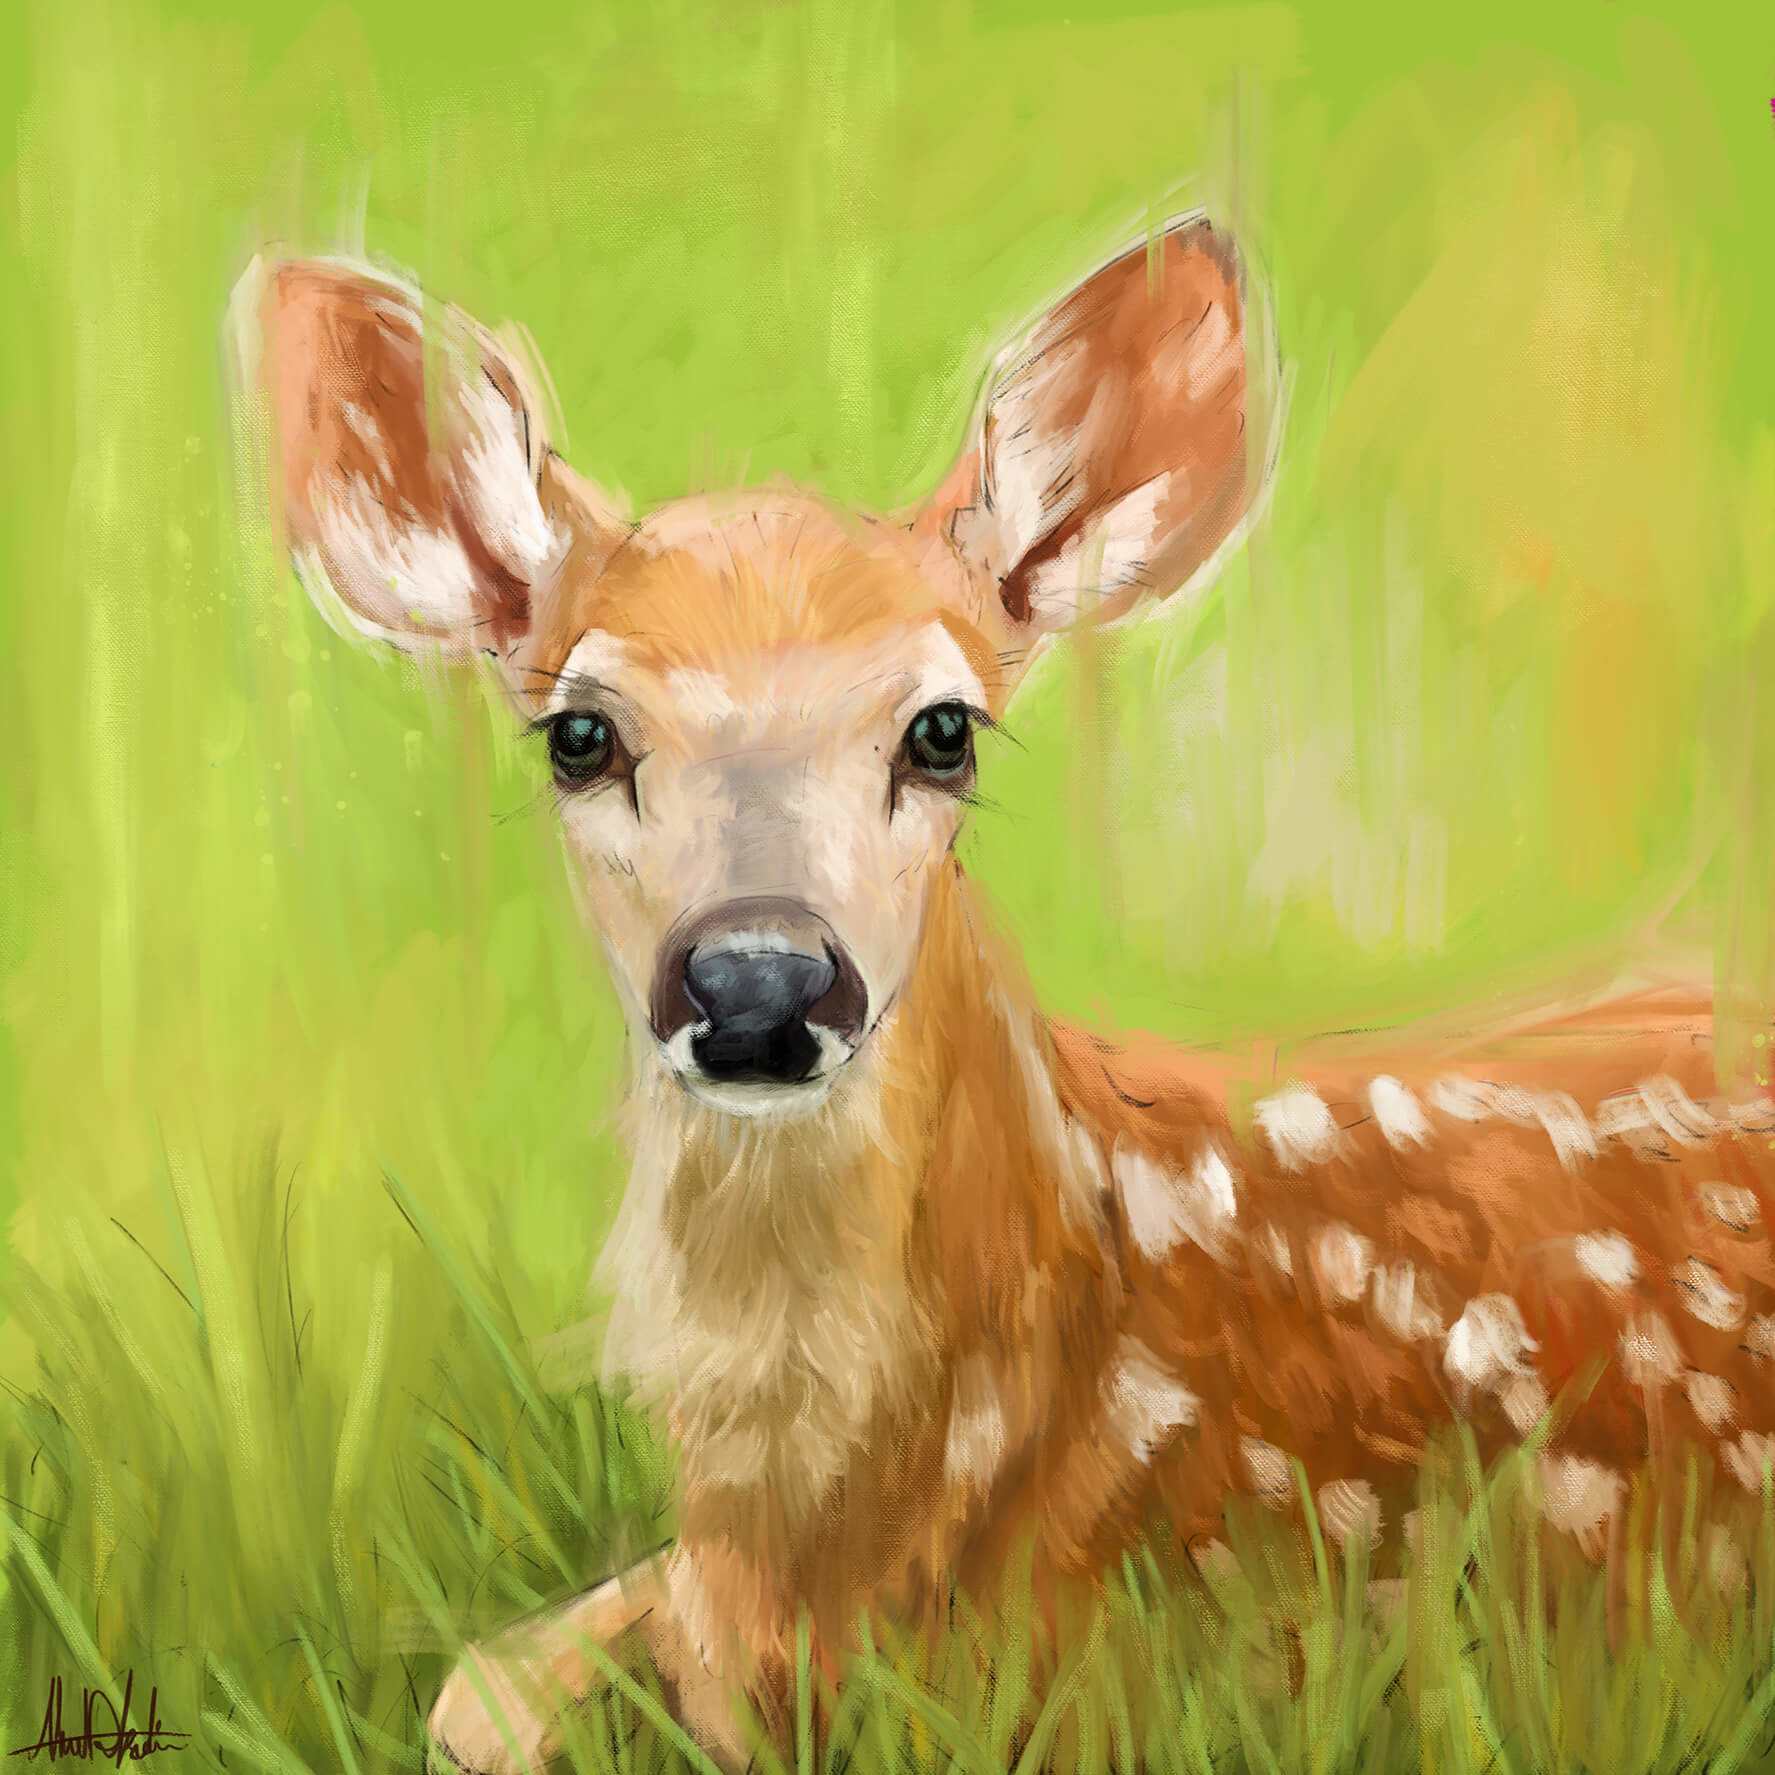 ArtStation - Cute deer baby painting with green background painted ...